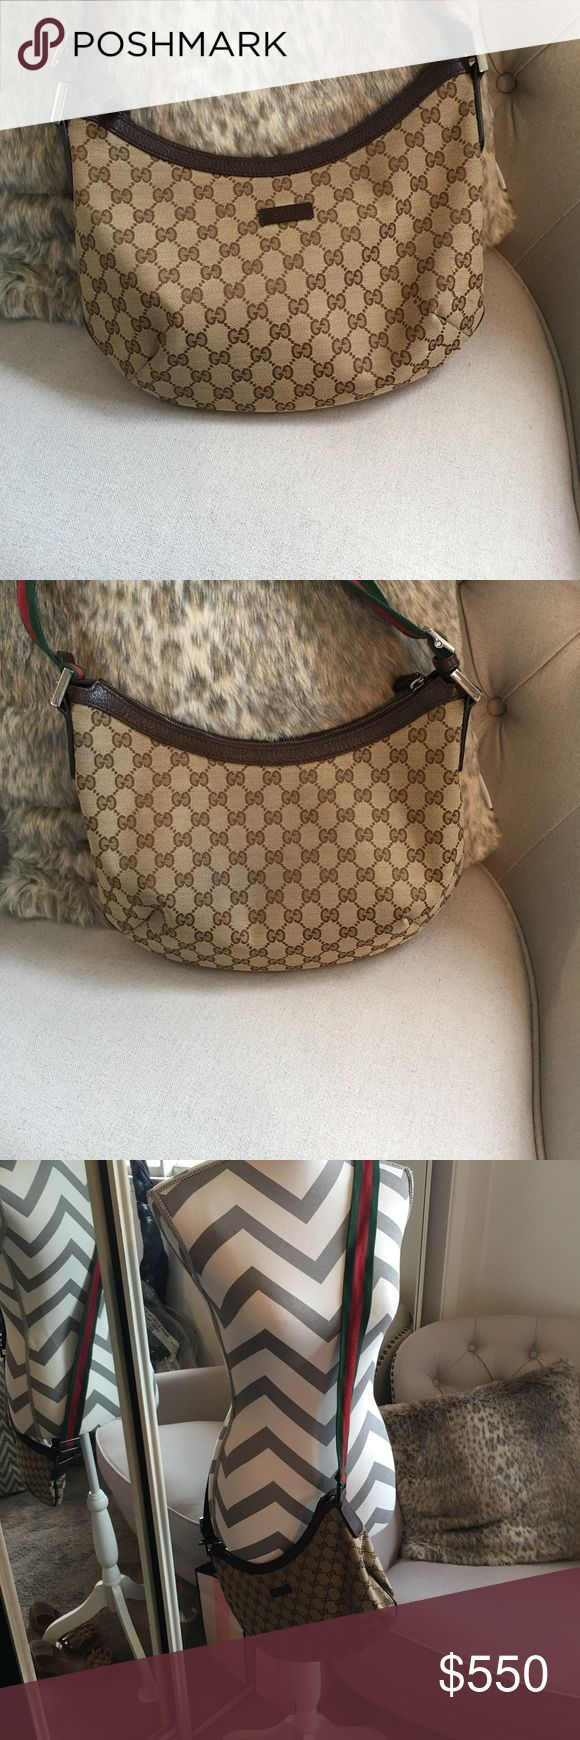 Gucci messenger bag Gucci cross body with adjustable red and green strap, excellent condition inside and out. Bought online from neiman Marcus in 2016. Gucci Bags Crossbody Bags